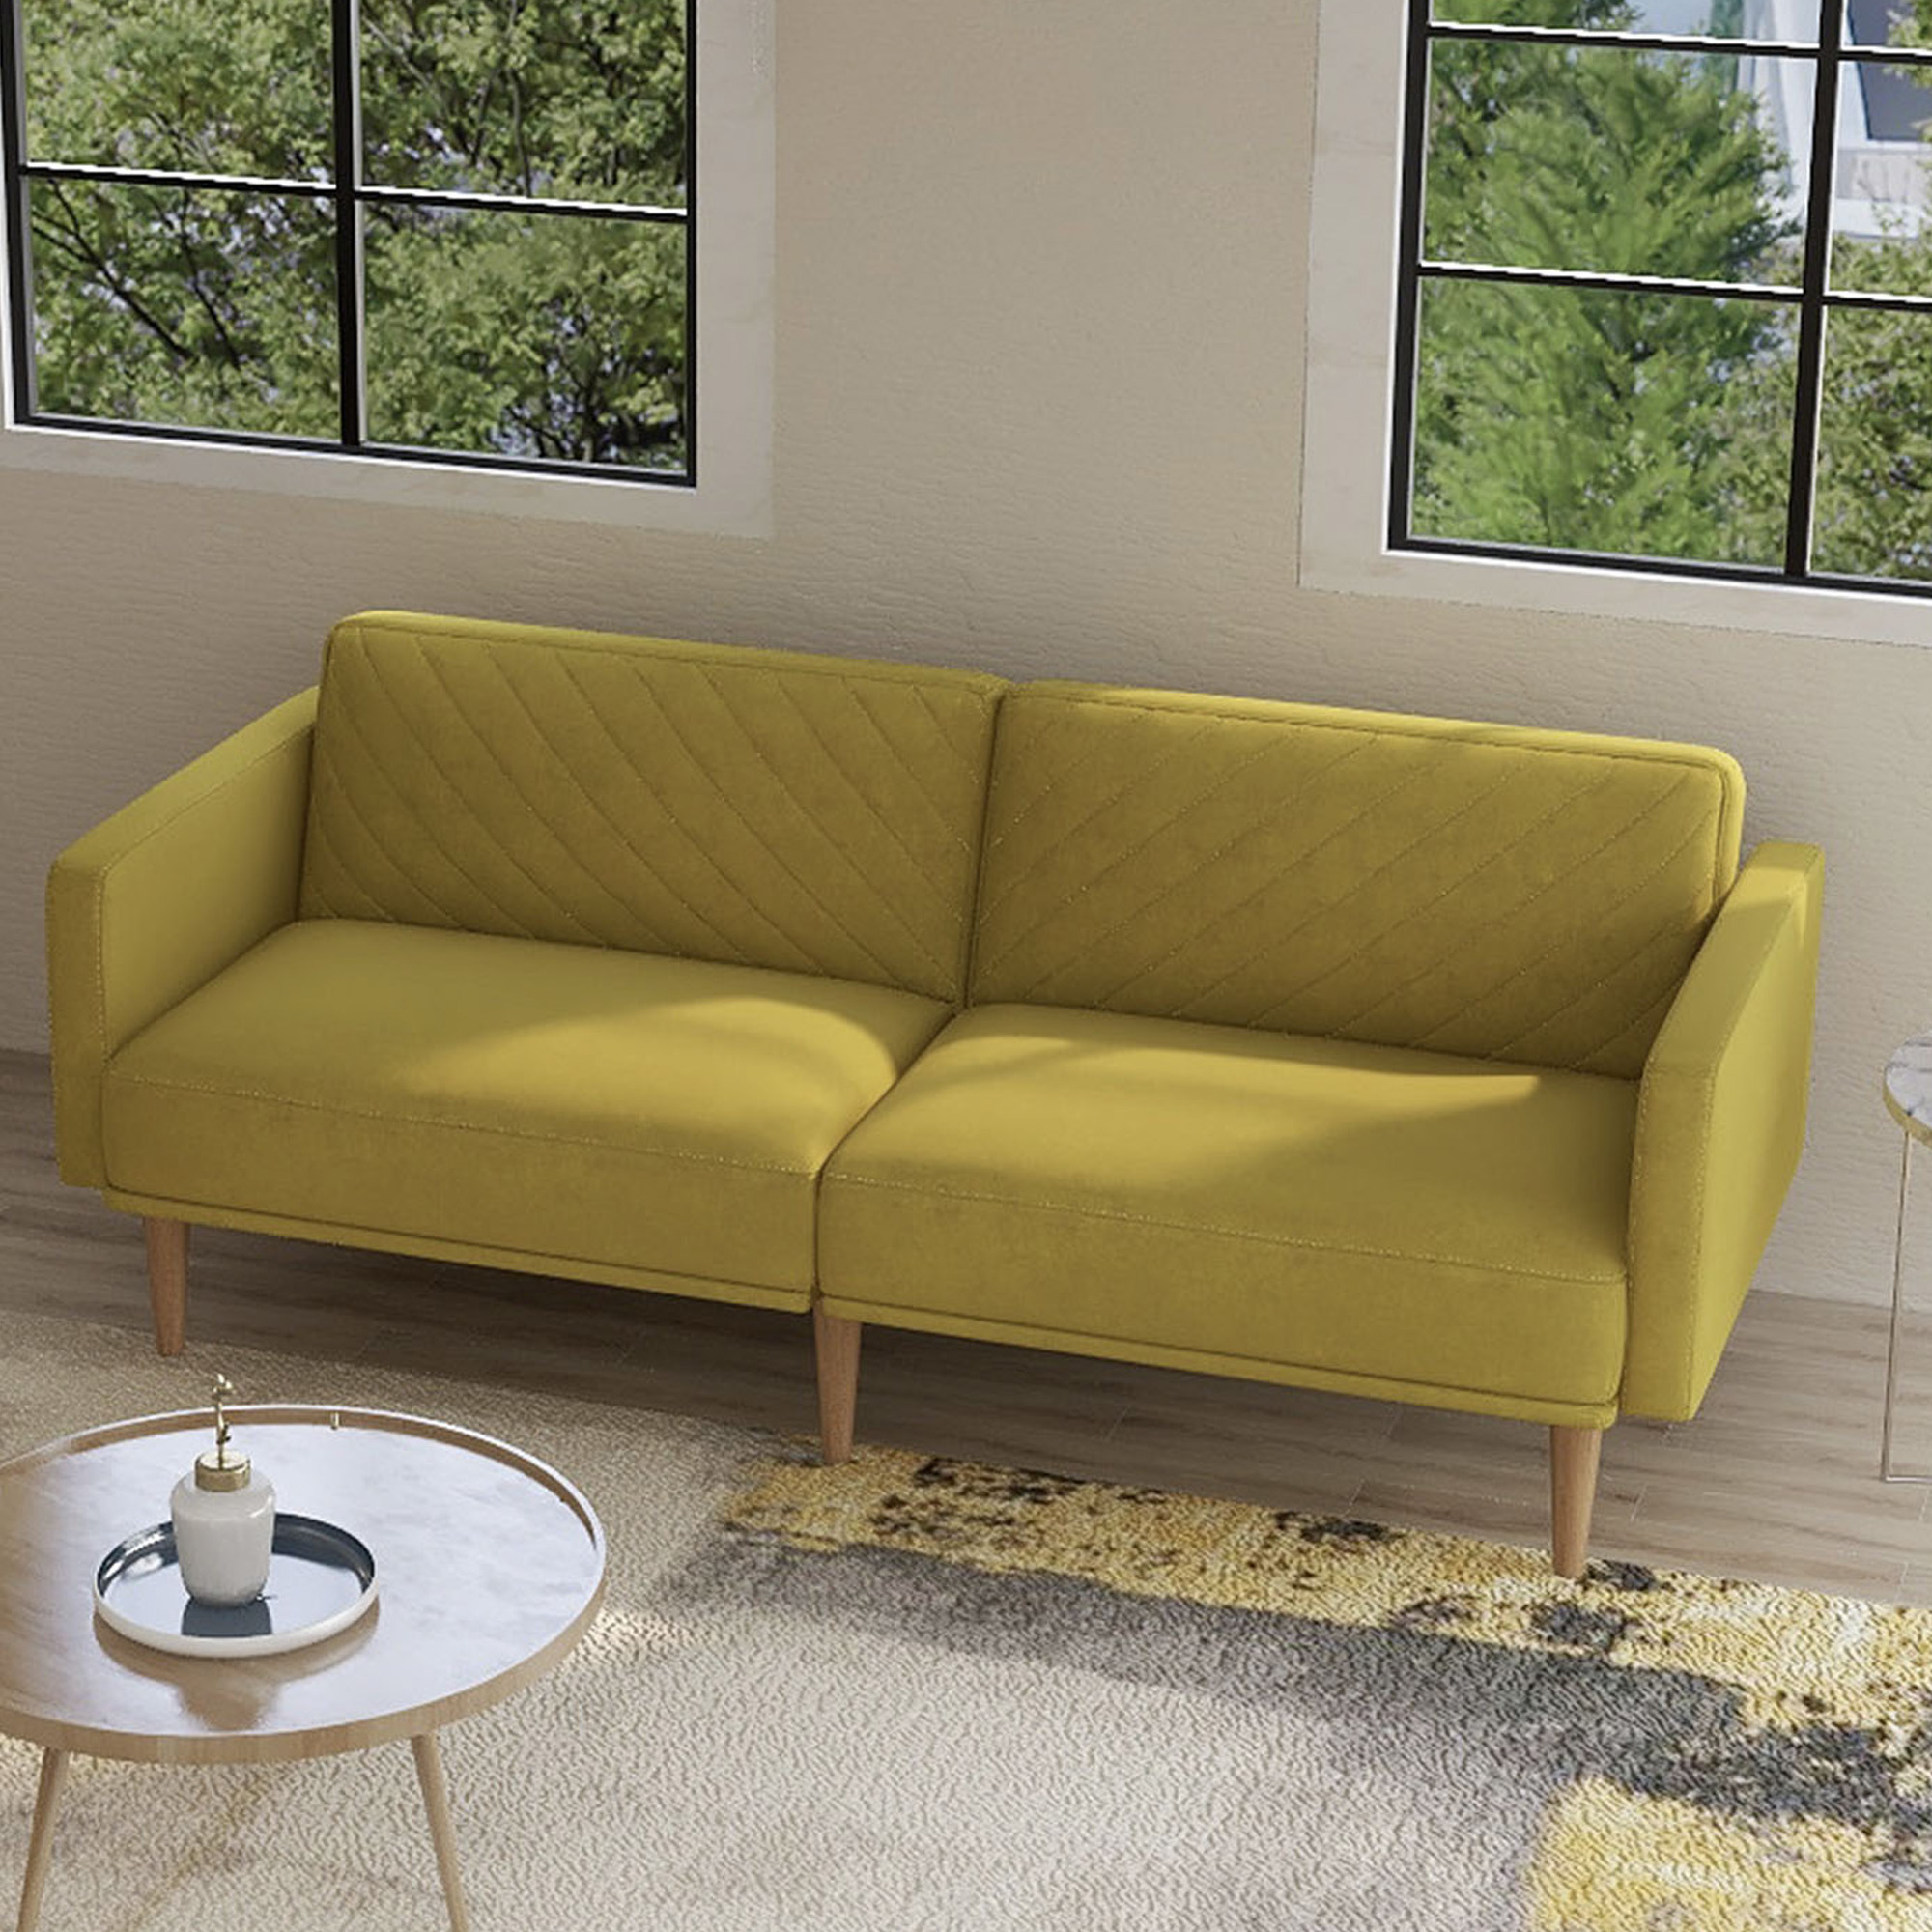 Velvet Fabric Sofa Beds, Urhomepro Mid Century Modern Regarding Mireille Modern And Contemporary Fabric Upholstered Sectional Sofas (View 5 of 15)